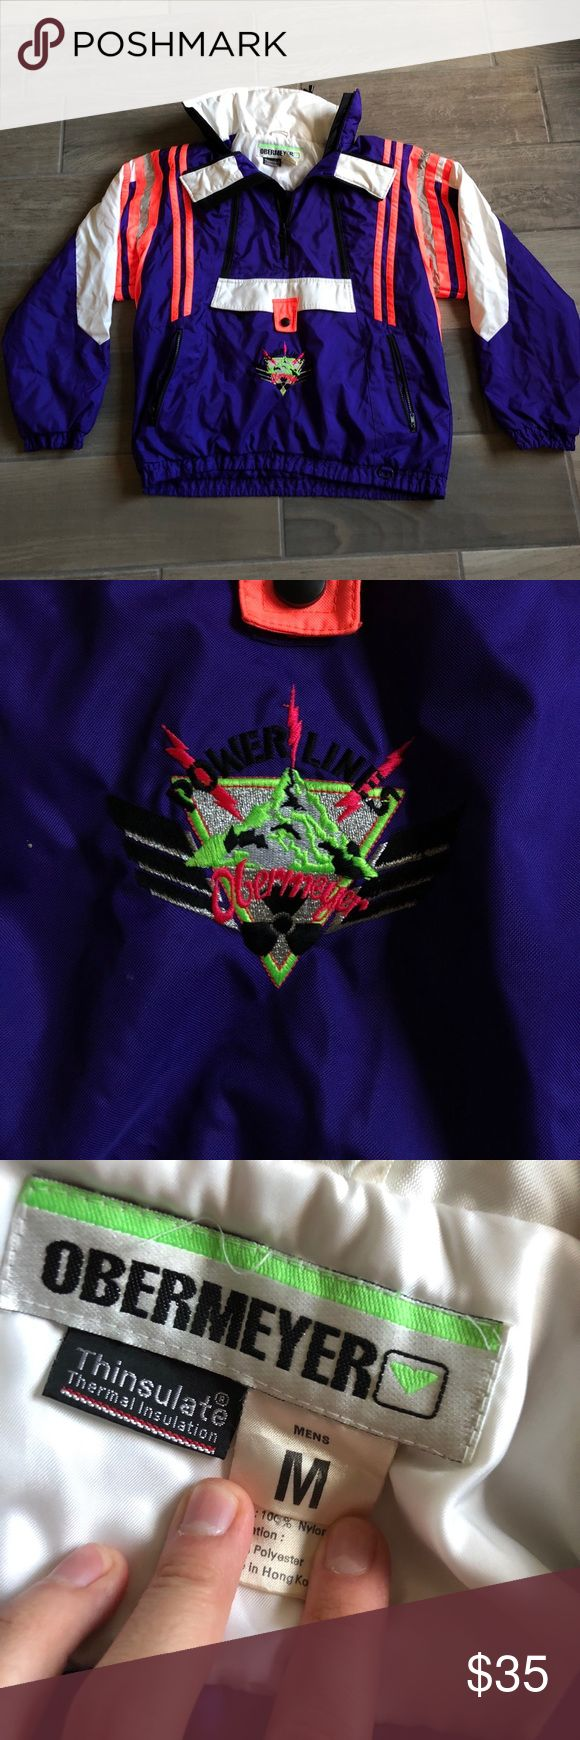 Vintage Obermeyer Powerlines Ski Snow Jacket Vintage Obermeyer Powerlines Ski Snow Jacket Size M 🏂❄️  Pre Owned 8/10 Condition  No Returns   Only Shipping to the USA 🇺🇸  Comment for offers or more info about this item 😁  #depop #depopfamous #Obermeyer #Ski #coat #Vintage #jacket #snow #powerlines #purple #snowboard #winter @depop Obermeyer Jackets & Coats Ski & Snowboard